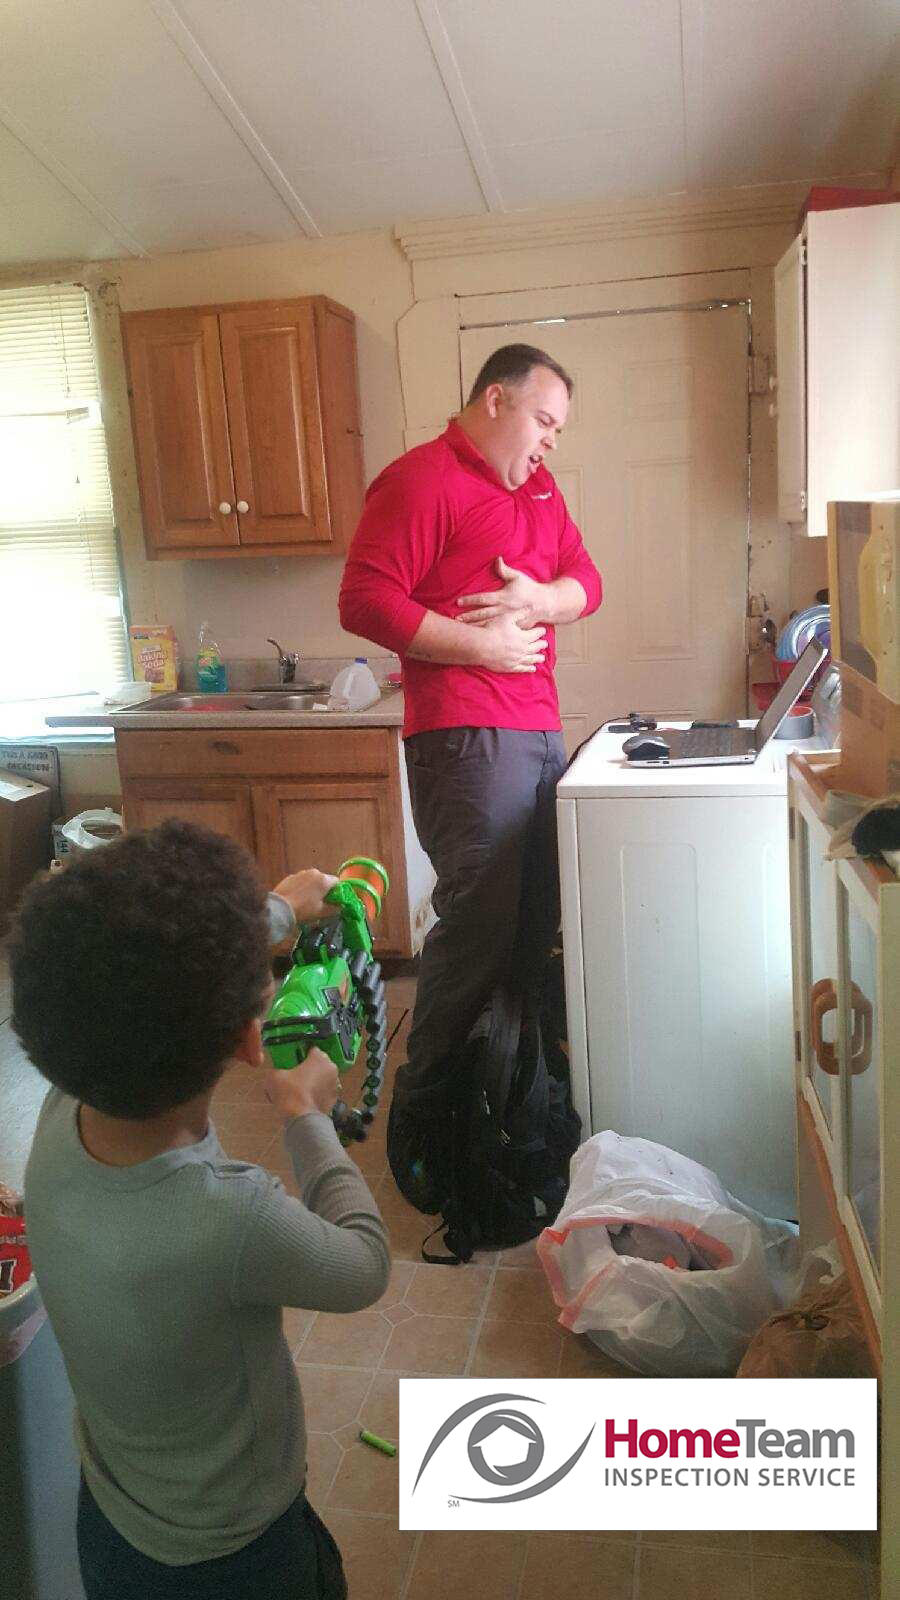 We have fun on the job! HomeTeam Inspection Service Louisville (502)785-8142